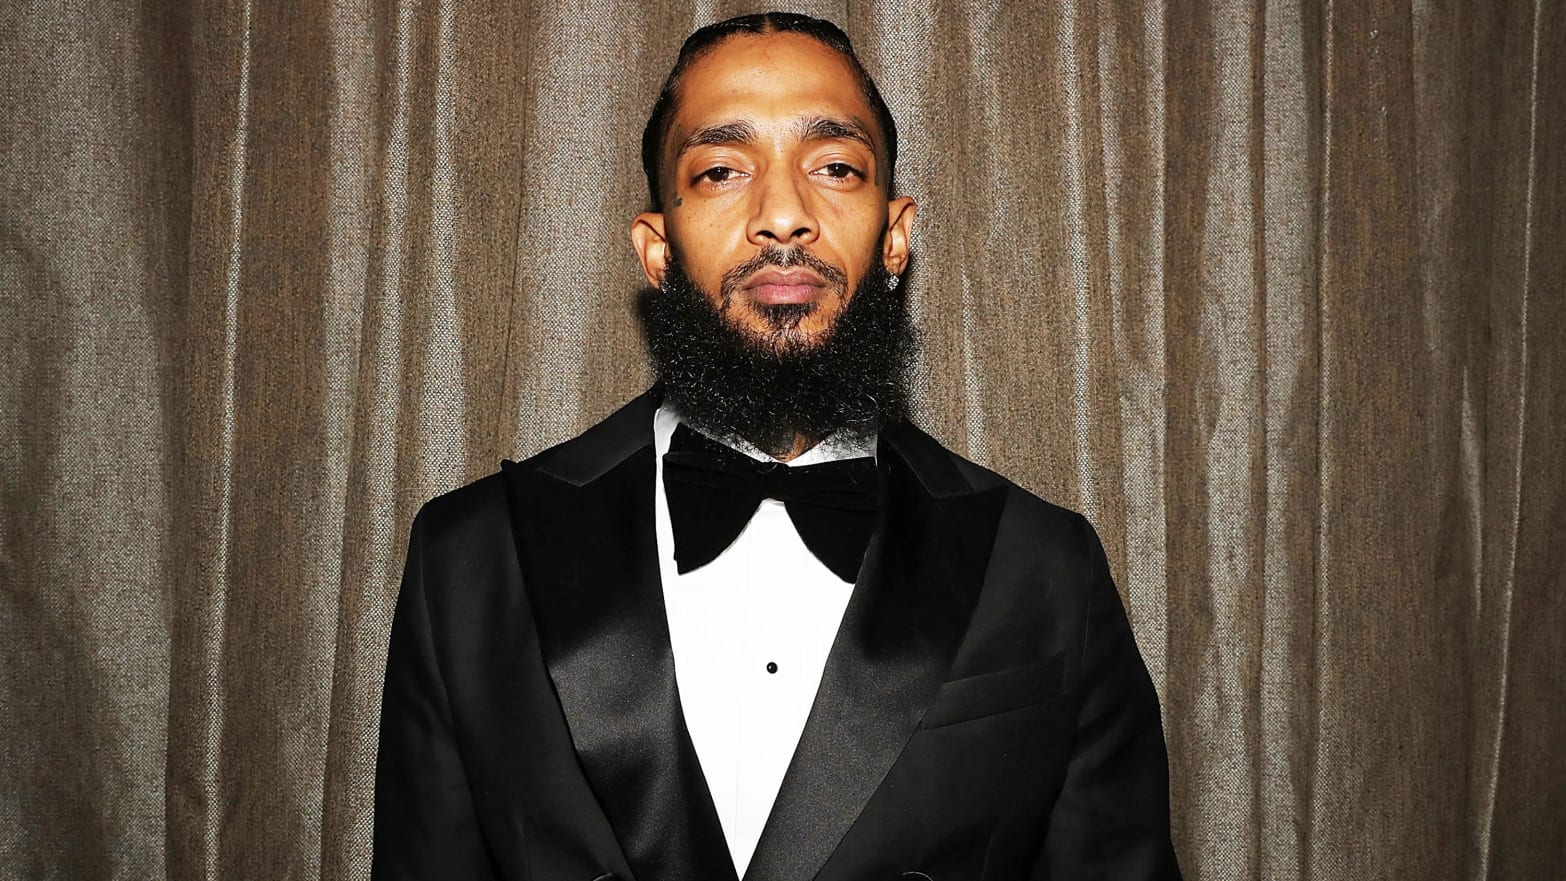 [Photo] Suspected Killer Of American Rapper, Nipsey Hussle Revealed